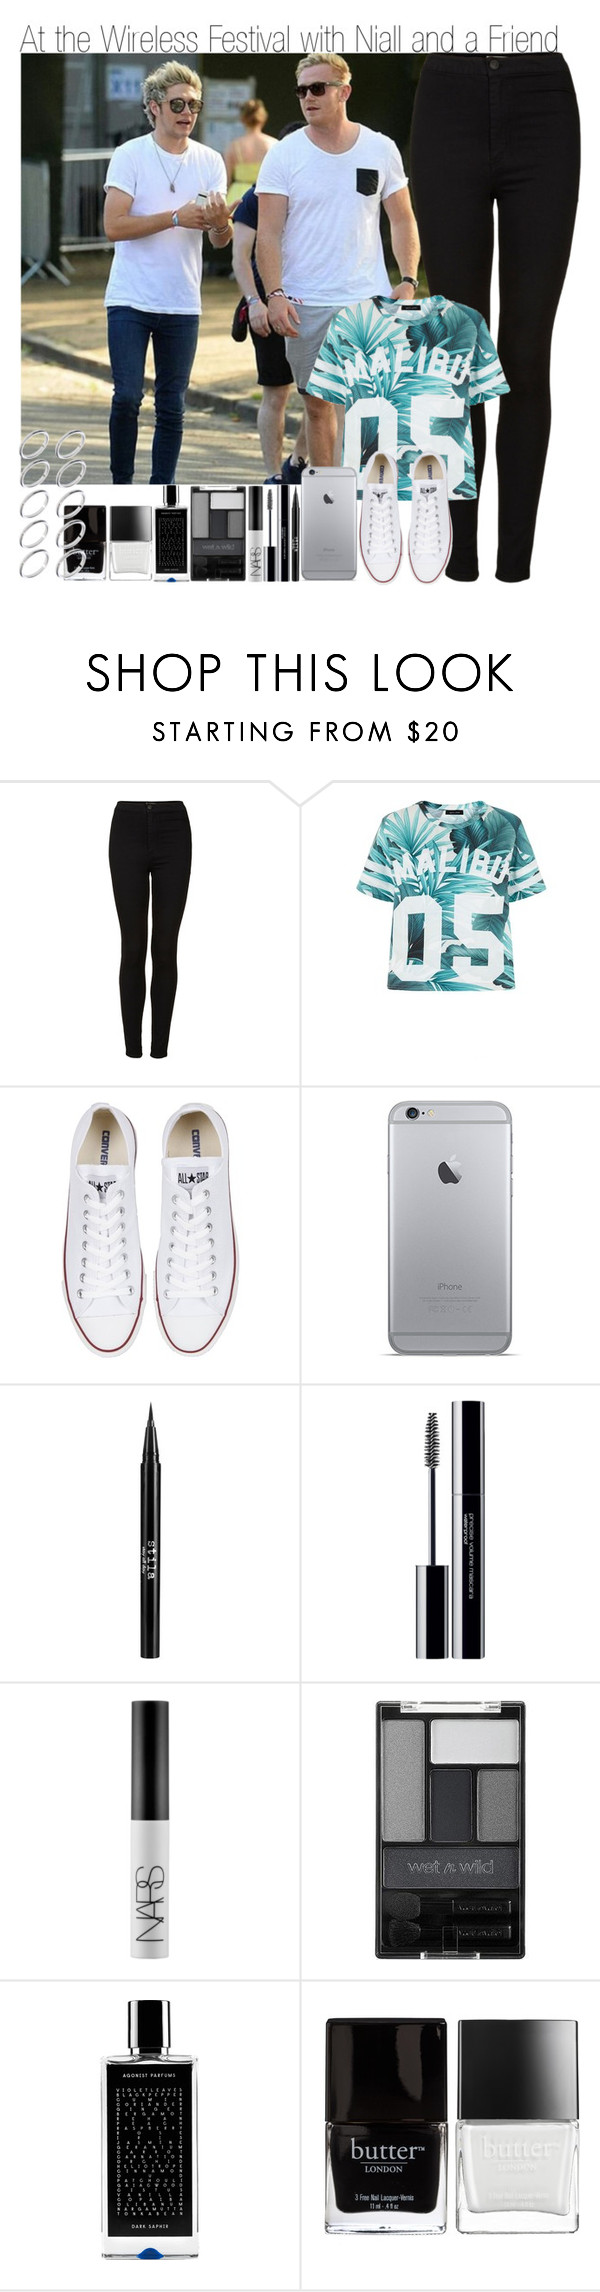 """""""At Wireless Festival with Niall and a Friend"""" by elise-22 ❤ liked on Polyvore featuring Topshop, Converse, Stila, shu uemura, NARS Cosmetics, Wet n Wild, Agonist, Butter London and ASOS"""